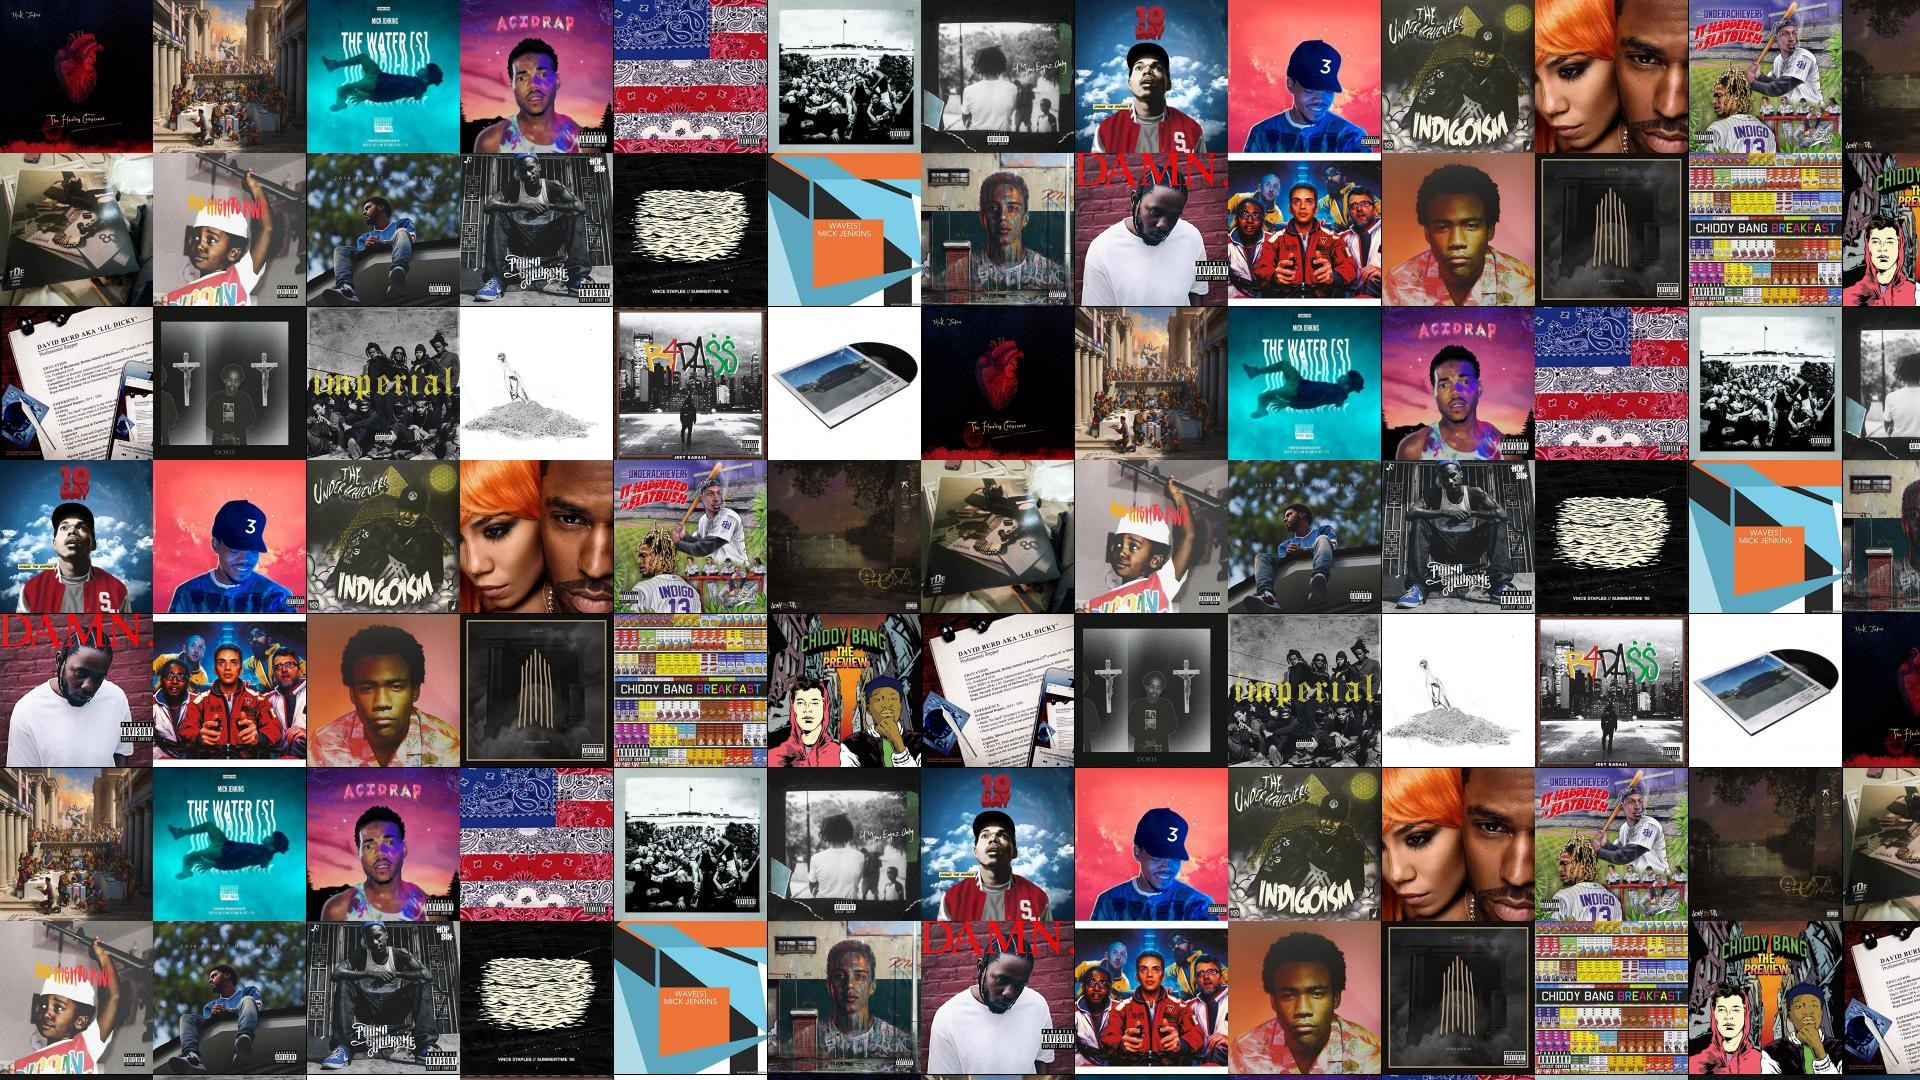 Download this free wallpaper with images of Mick Jenkins – , Logic – , Mick  Jenkins – Water, Chance The Rapper – Acid Rap, Joey Badass – Badass, …